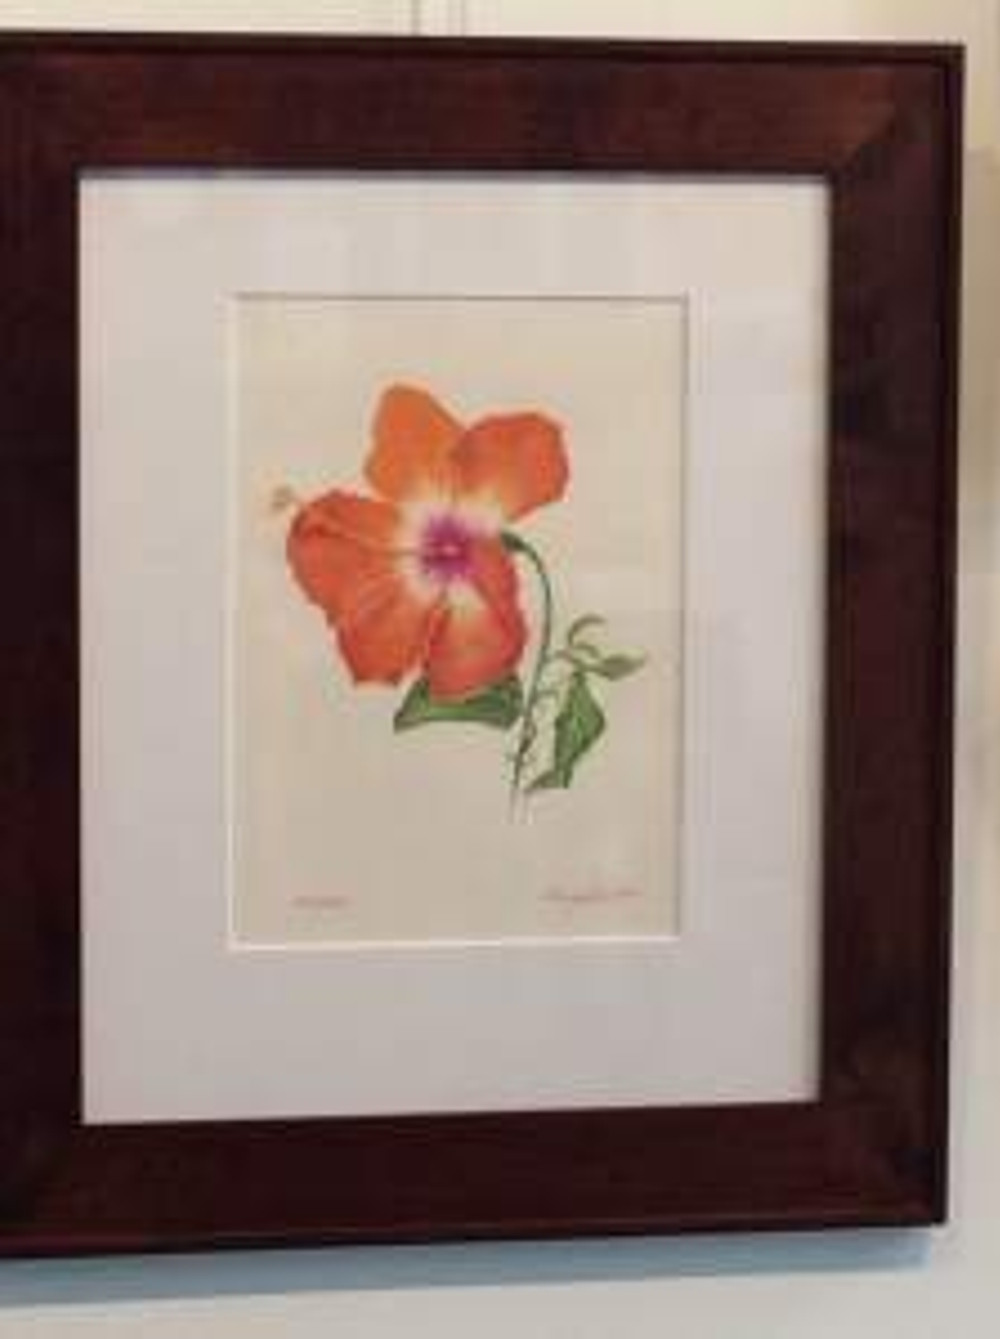 Hibiscus, colored pencil on paper by Nancy Grubb, © 2015, all rights reserved.